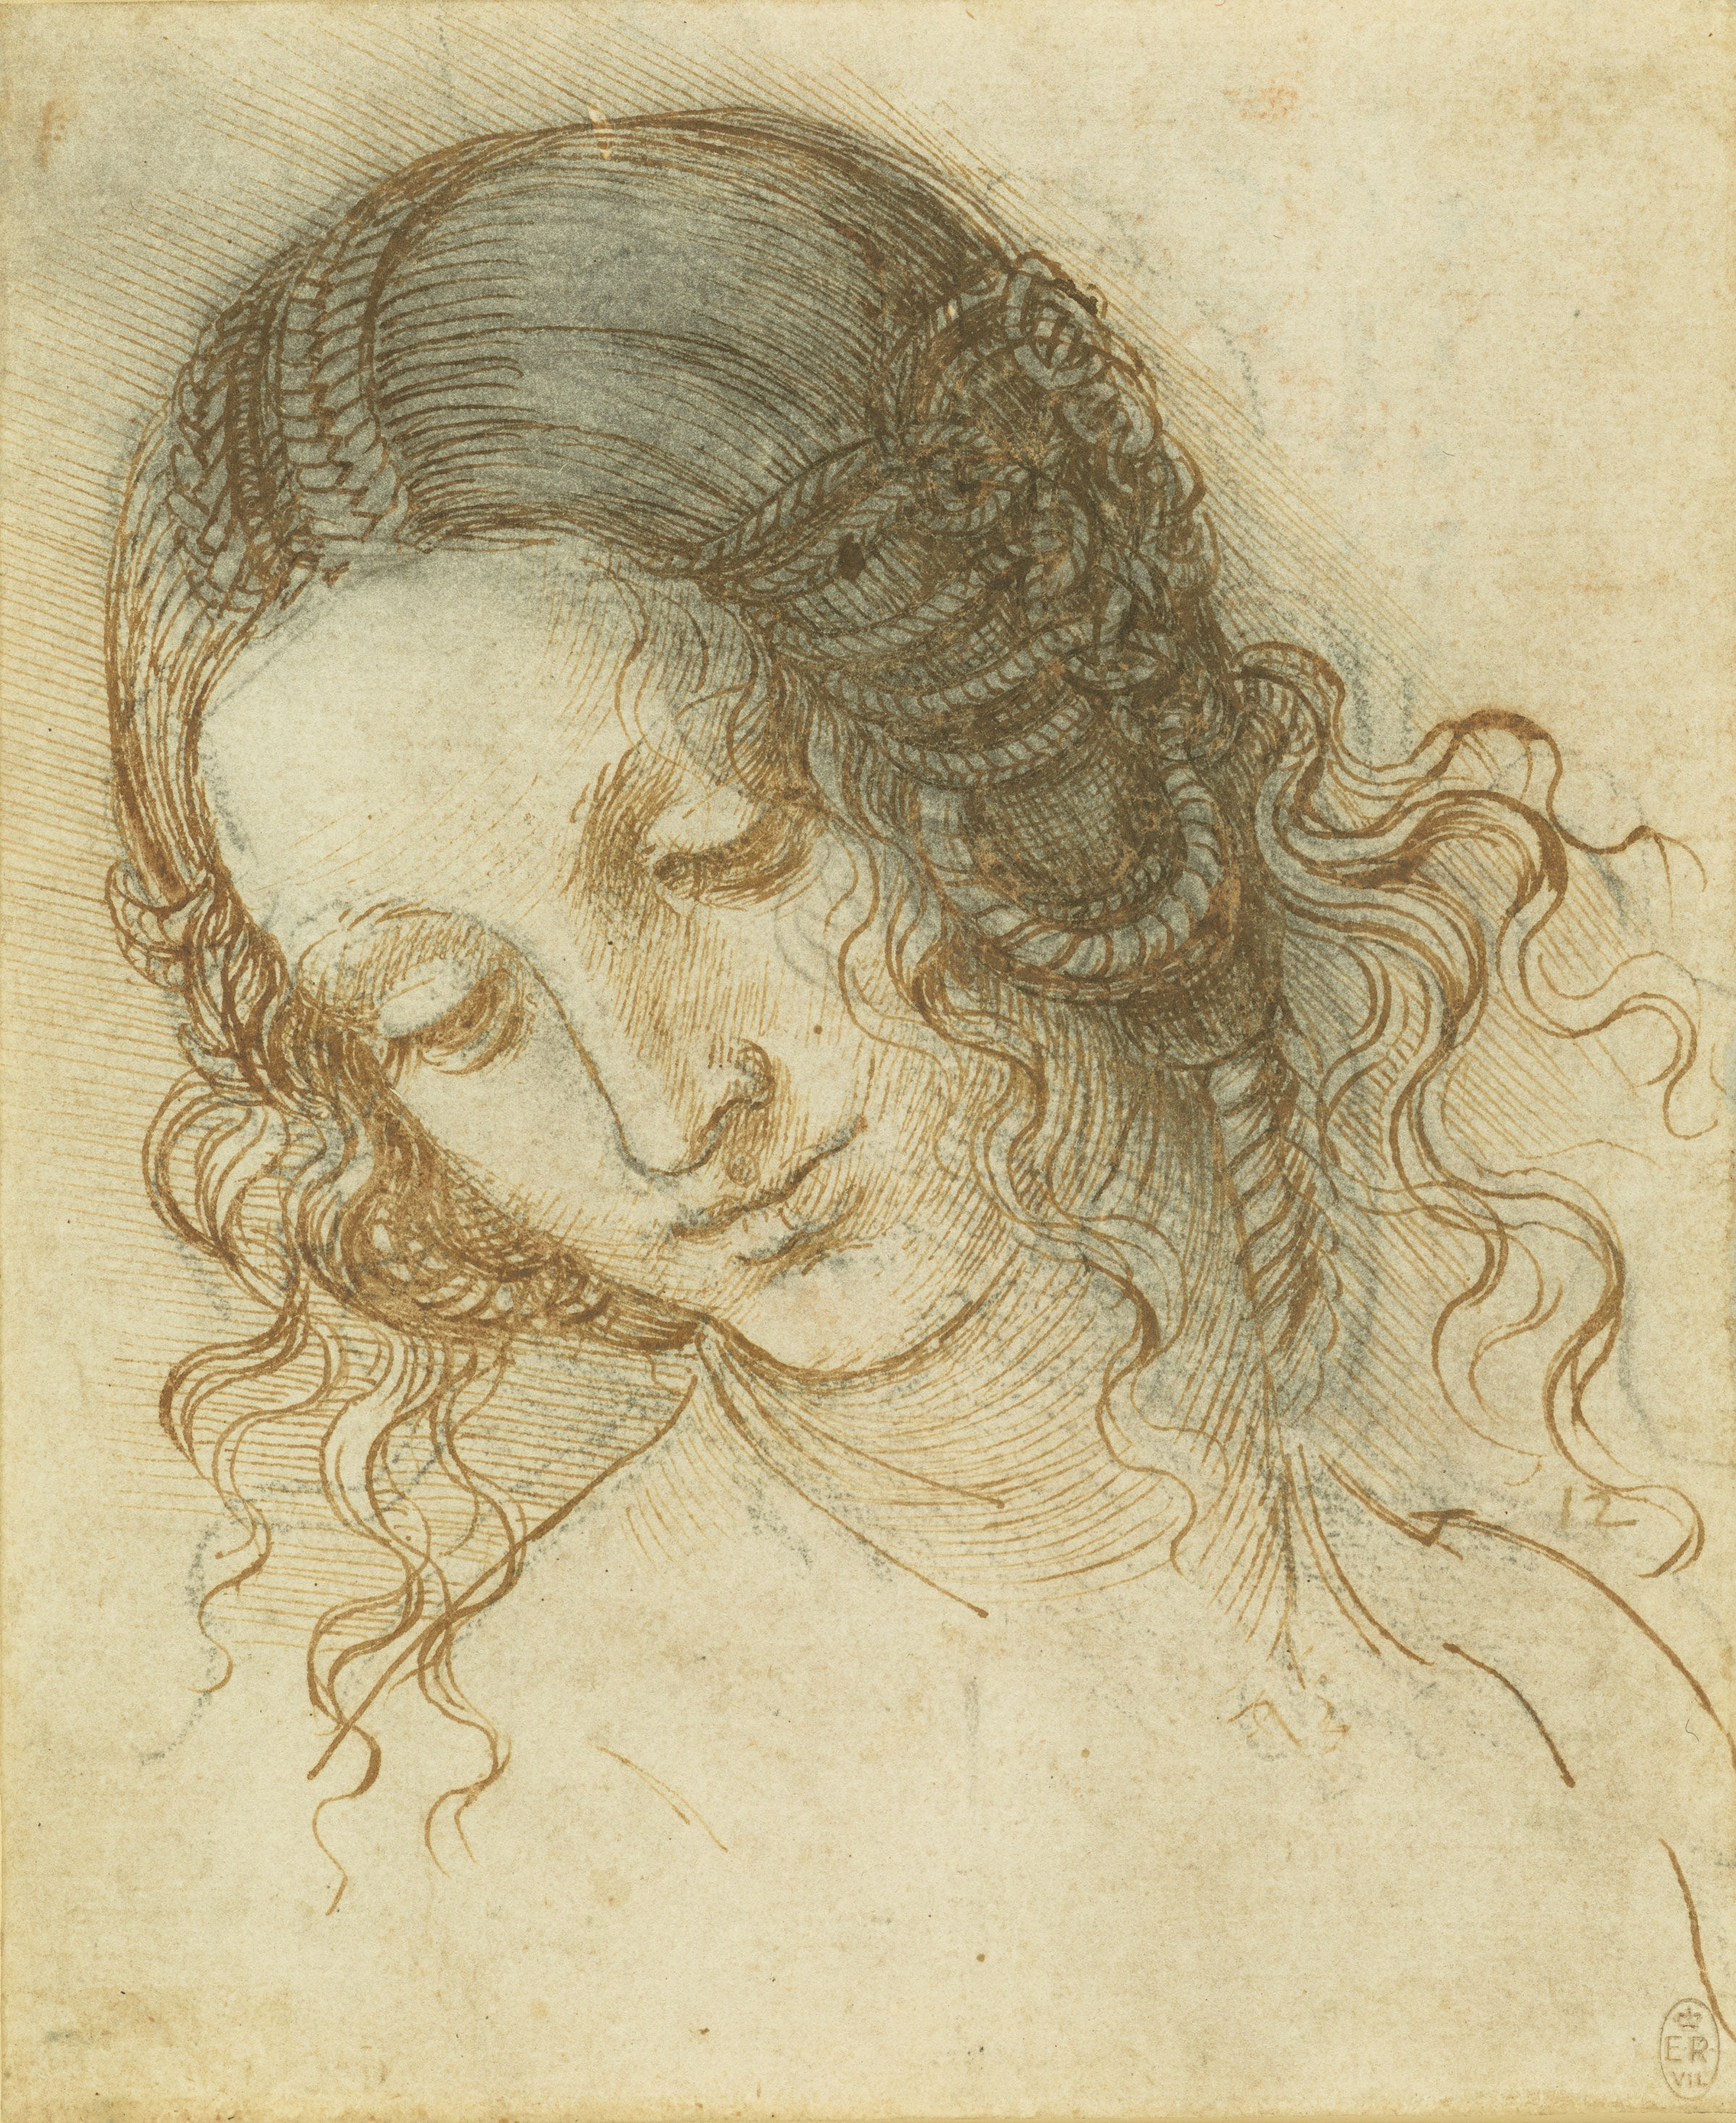 Leonardo Da Vinci's mysterious 'invisible' drawings on display for first time